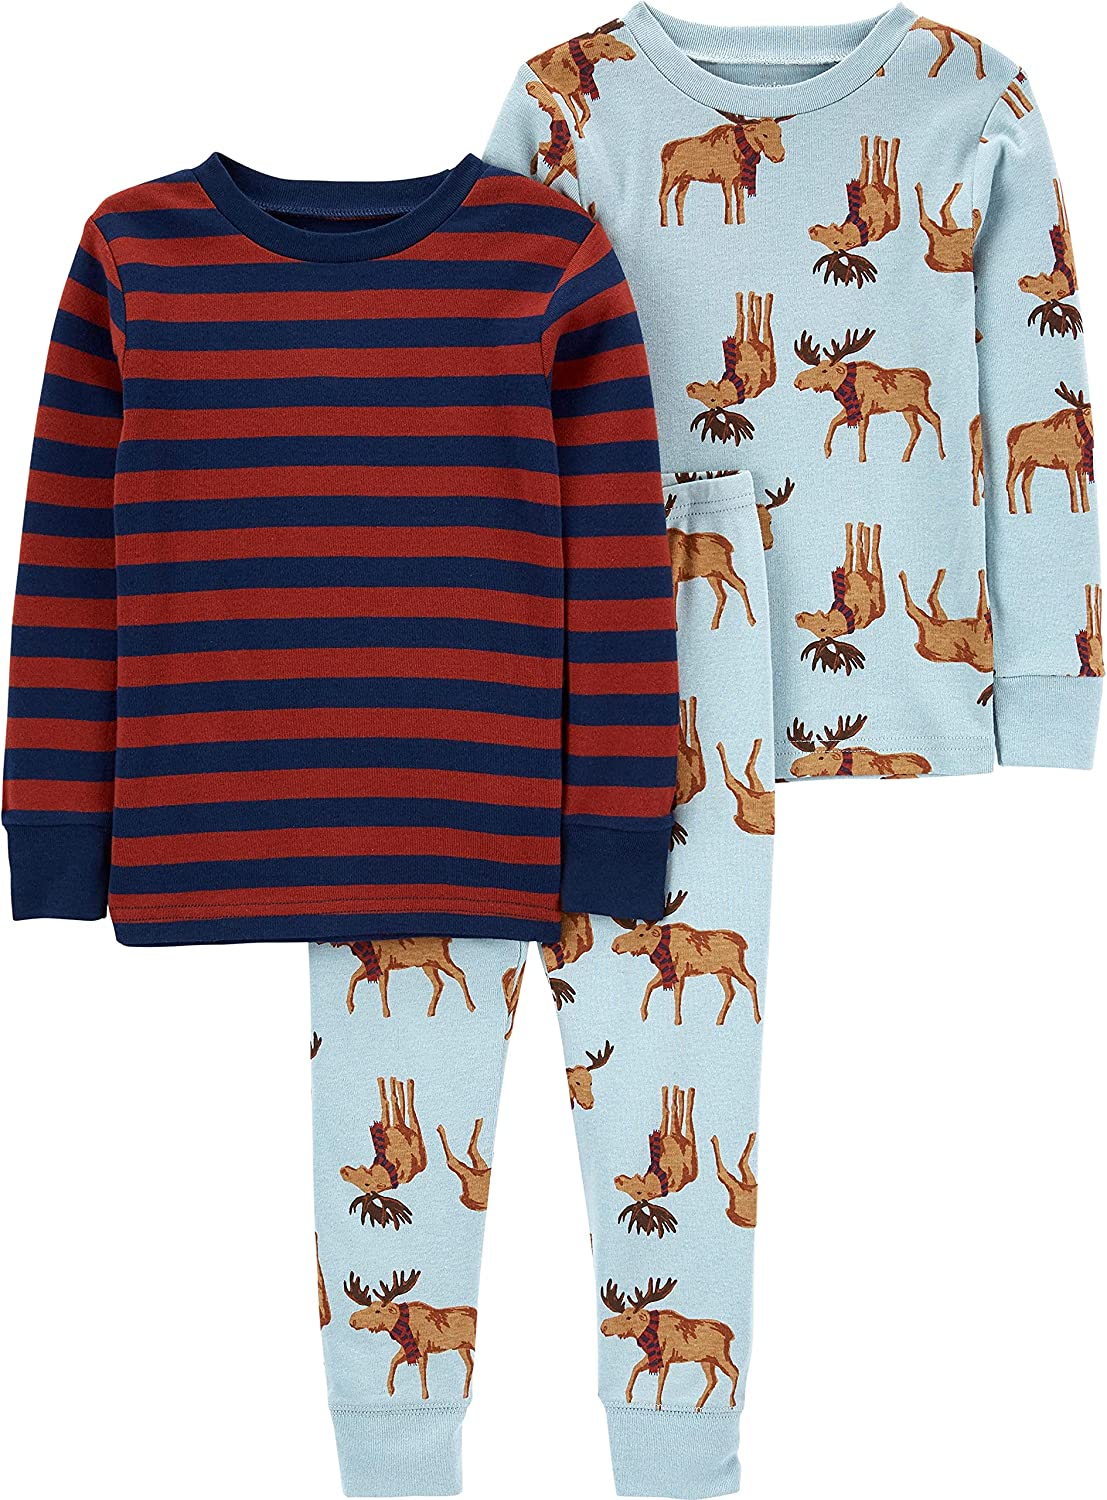 Simple Joys by Carter's Baby, Toddler, and Little Boys' 3-Piece Snug-fit Cotton Pajama Set